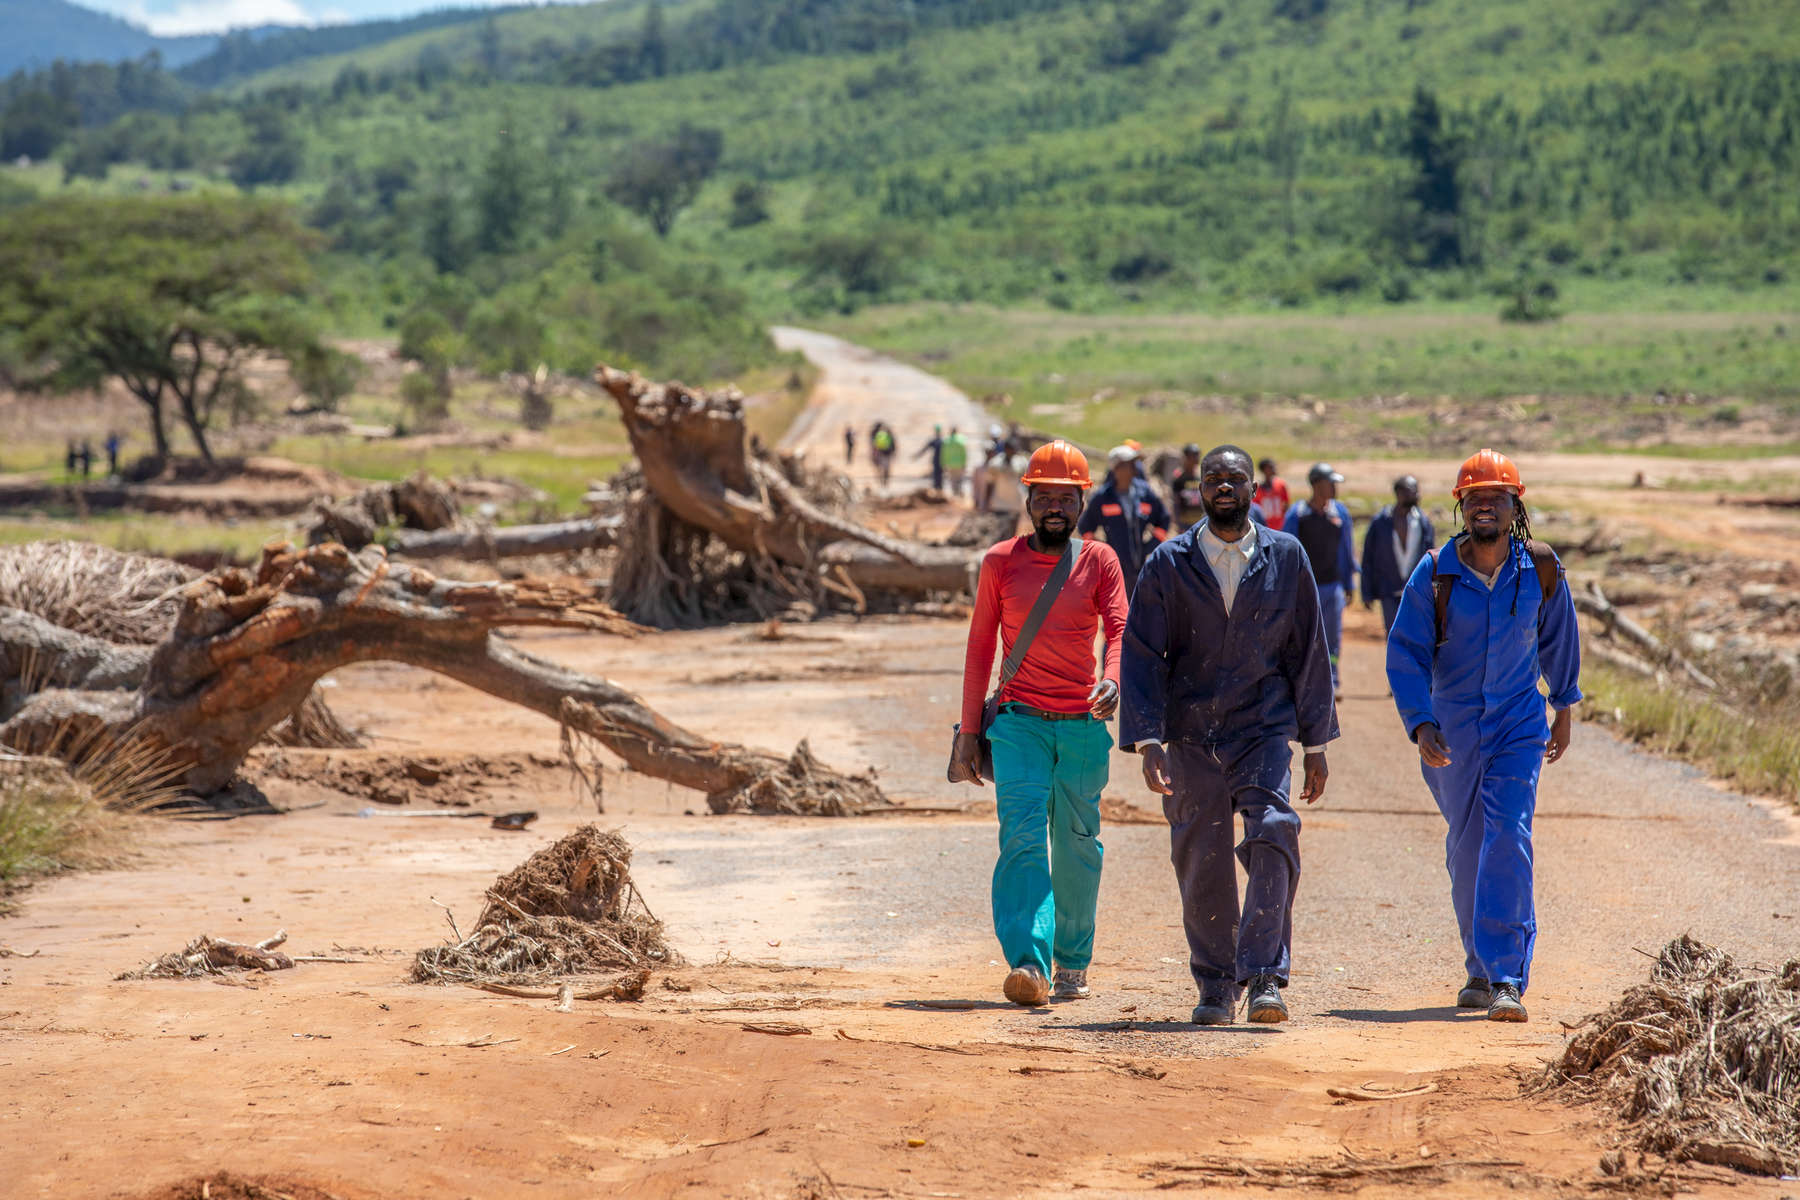 Utility workers walk across the remains of a bridge over the Nyahodi river, which burst its banks and washed away an entire market full of stalls, vendors and customers. It is estimated that 14 bridges around Chimanimani were destroyed, paralyzing transportation and making aid delivery slow and treacherous.